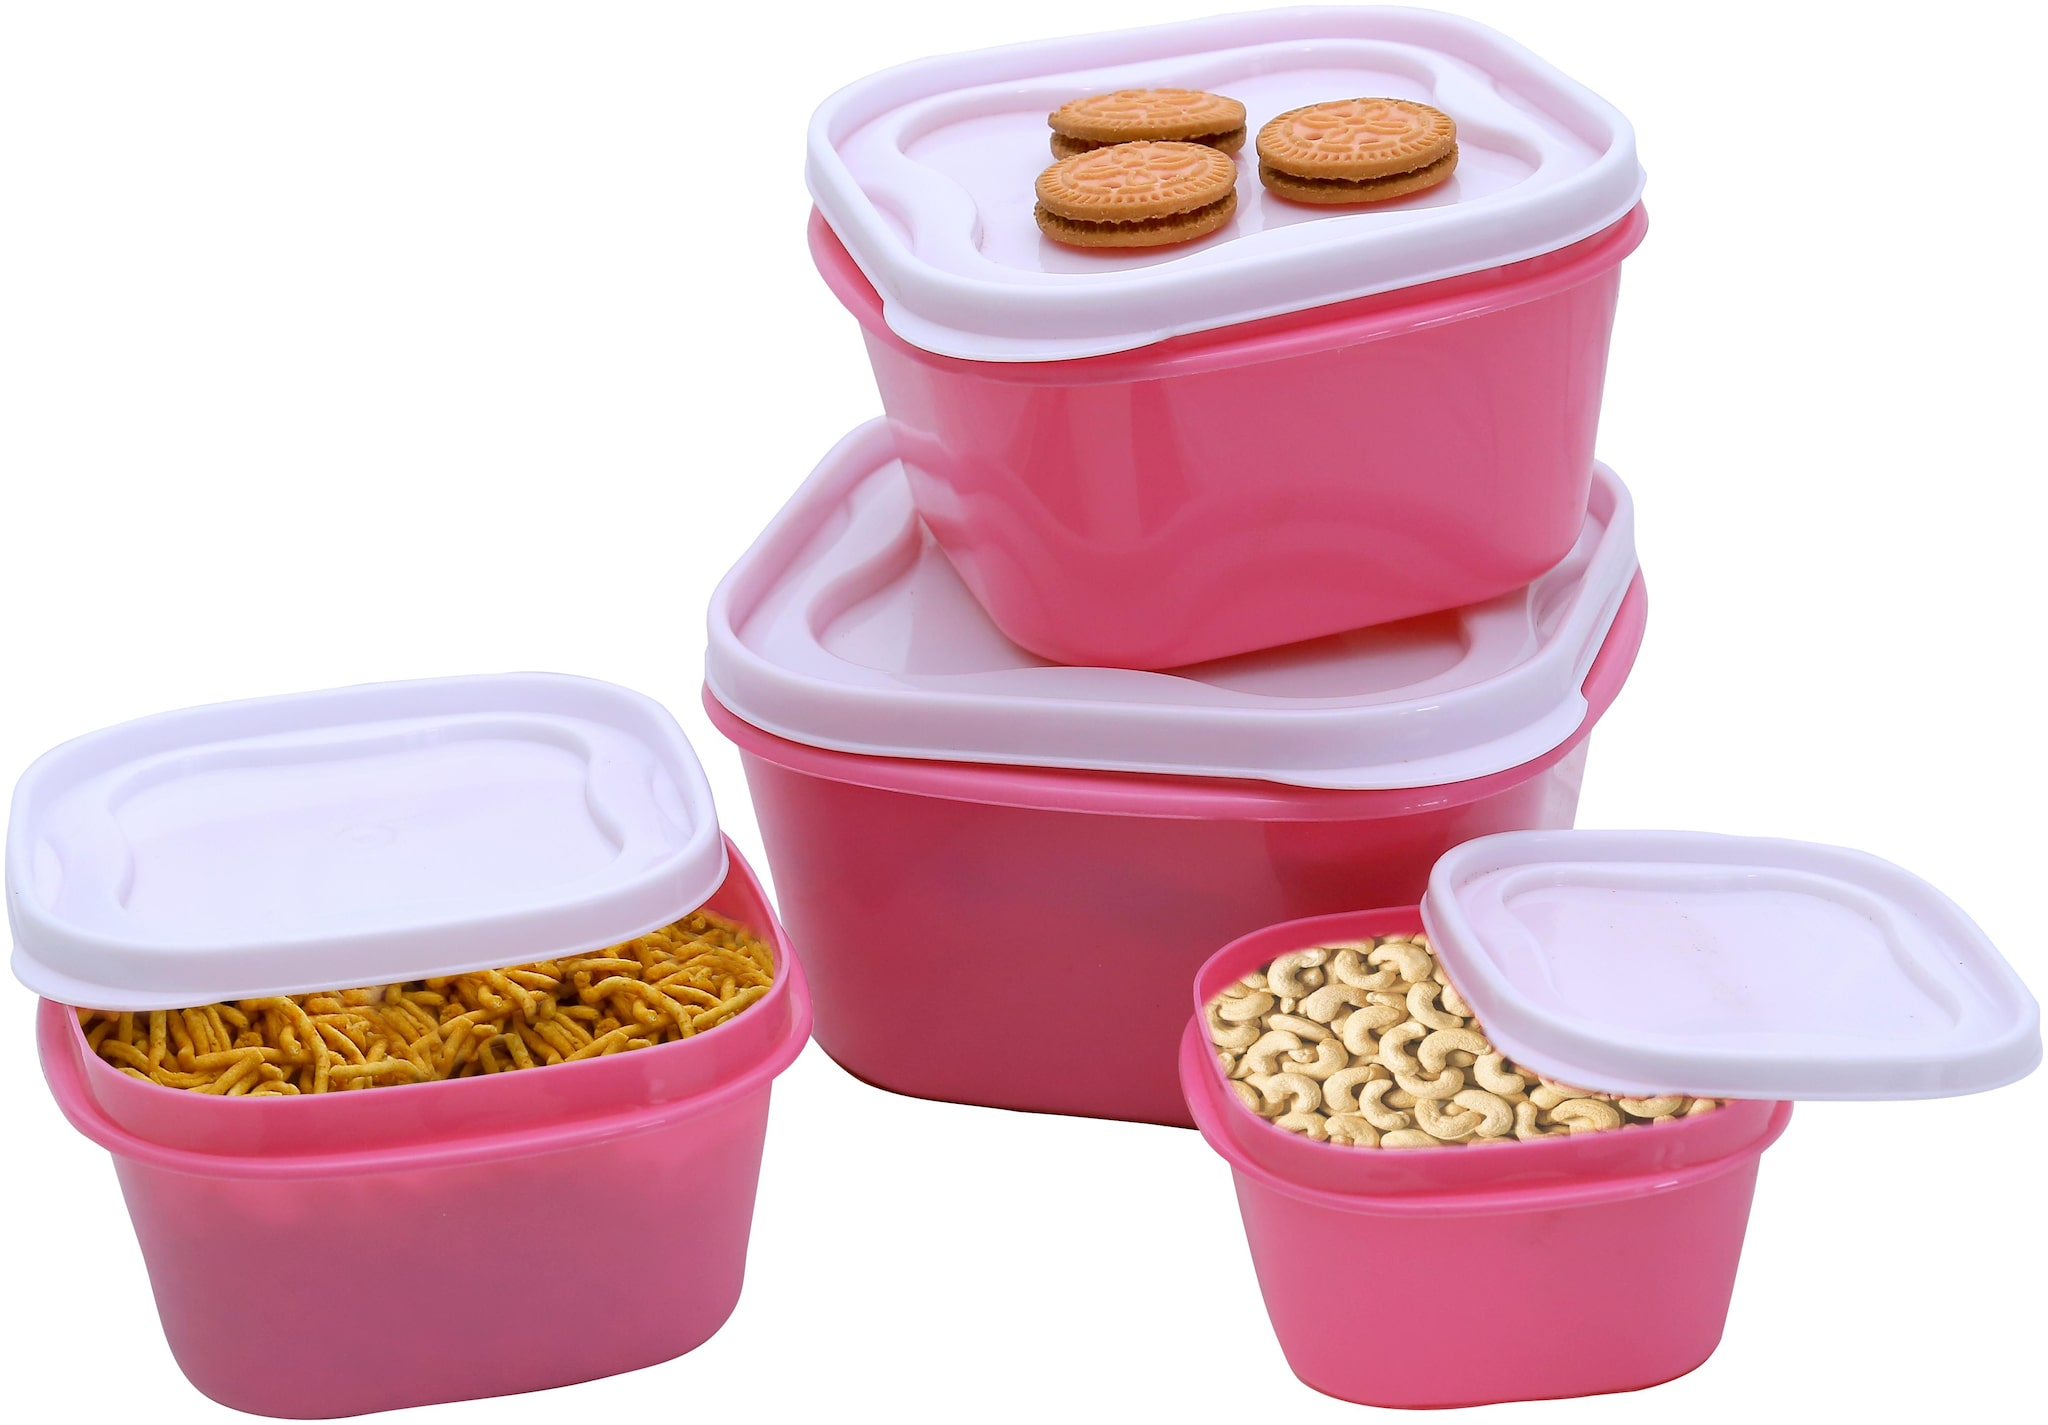 Your Choice 5000 ml Pink Plastic Container Set   Set of 4